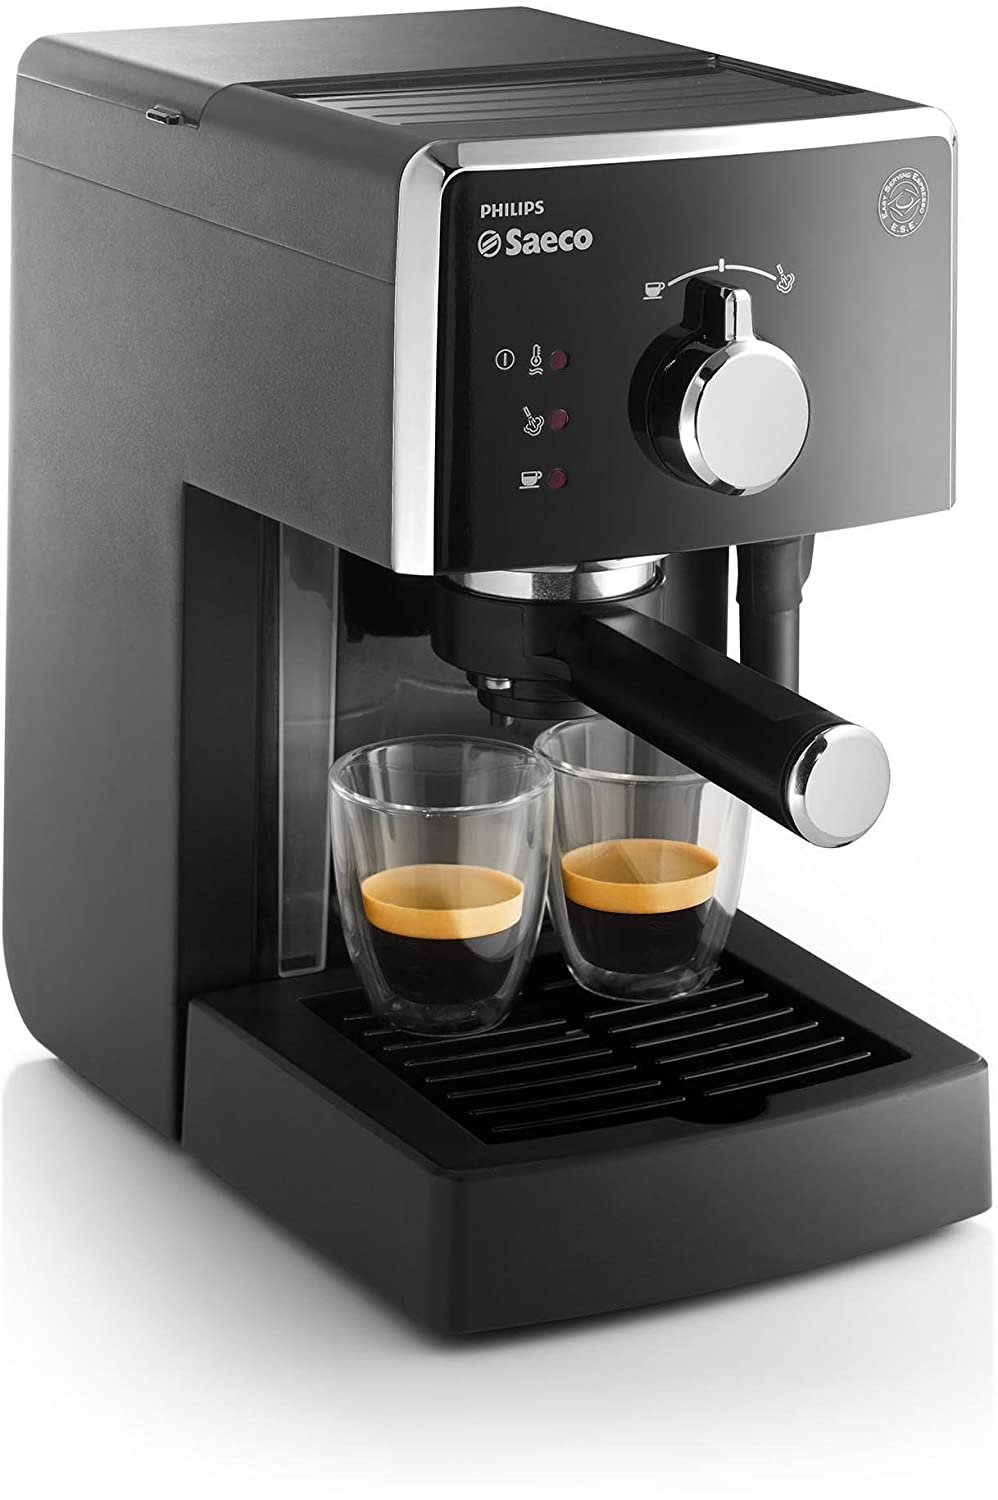 Saeco - Hd8423/11 - Máquina De Café Espresso Manual, 950 W, Color Negro (Reacondicionado Certificado): Amazon.es: Hogar